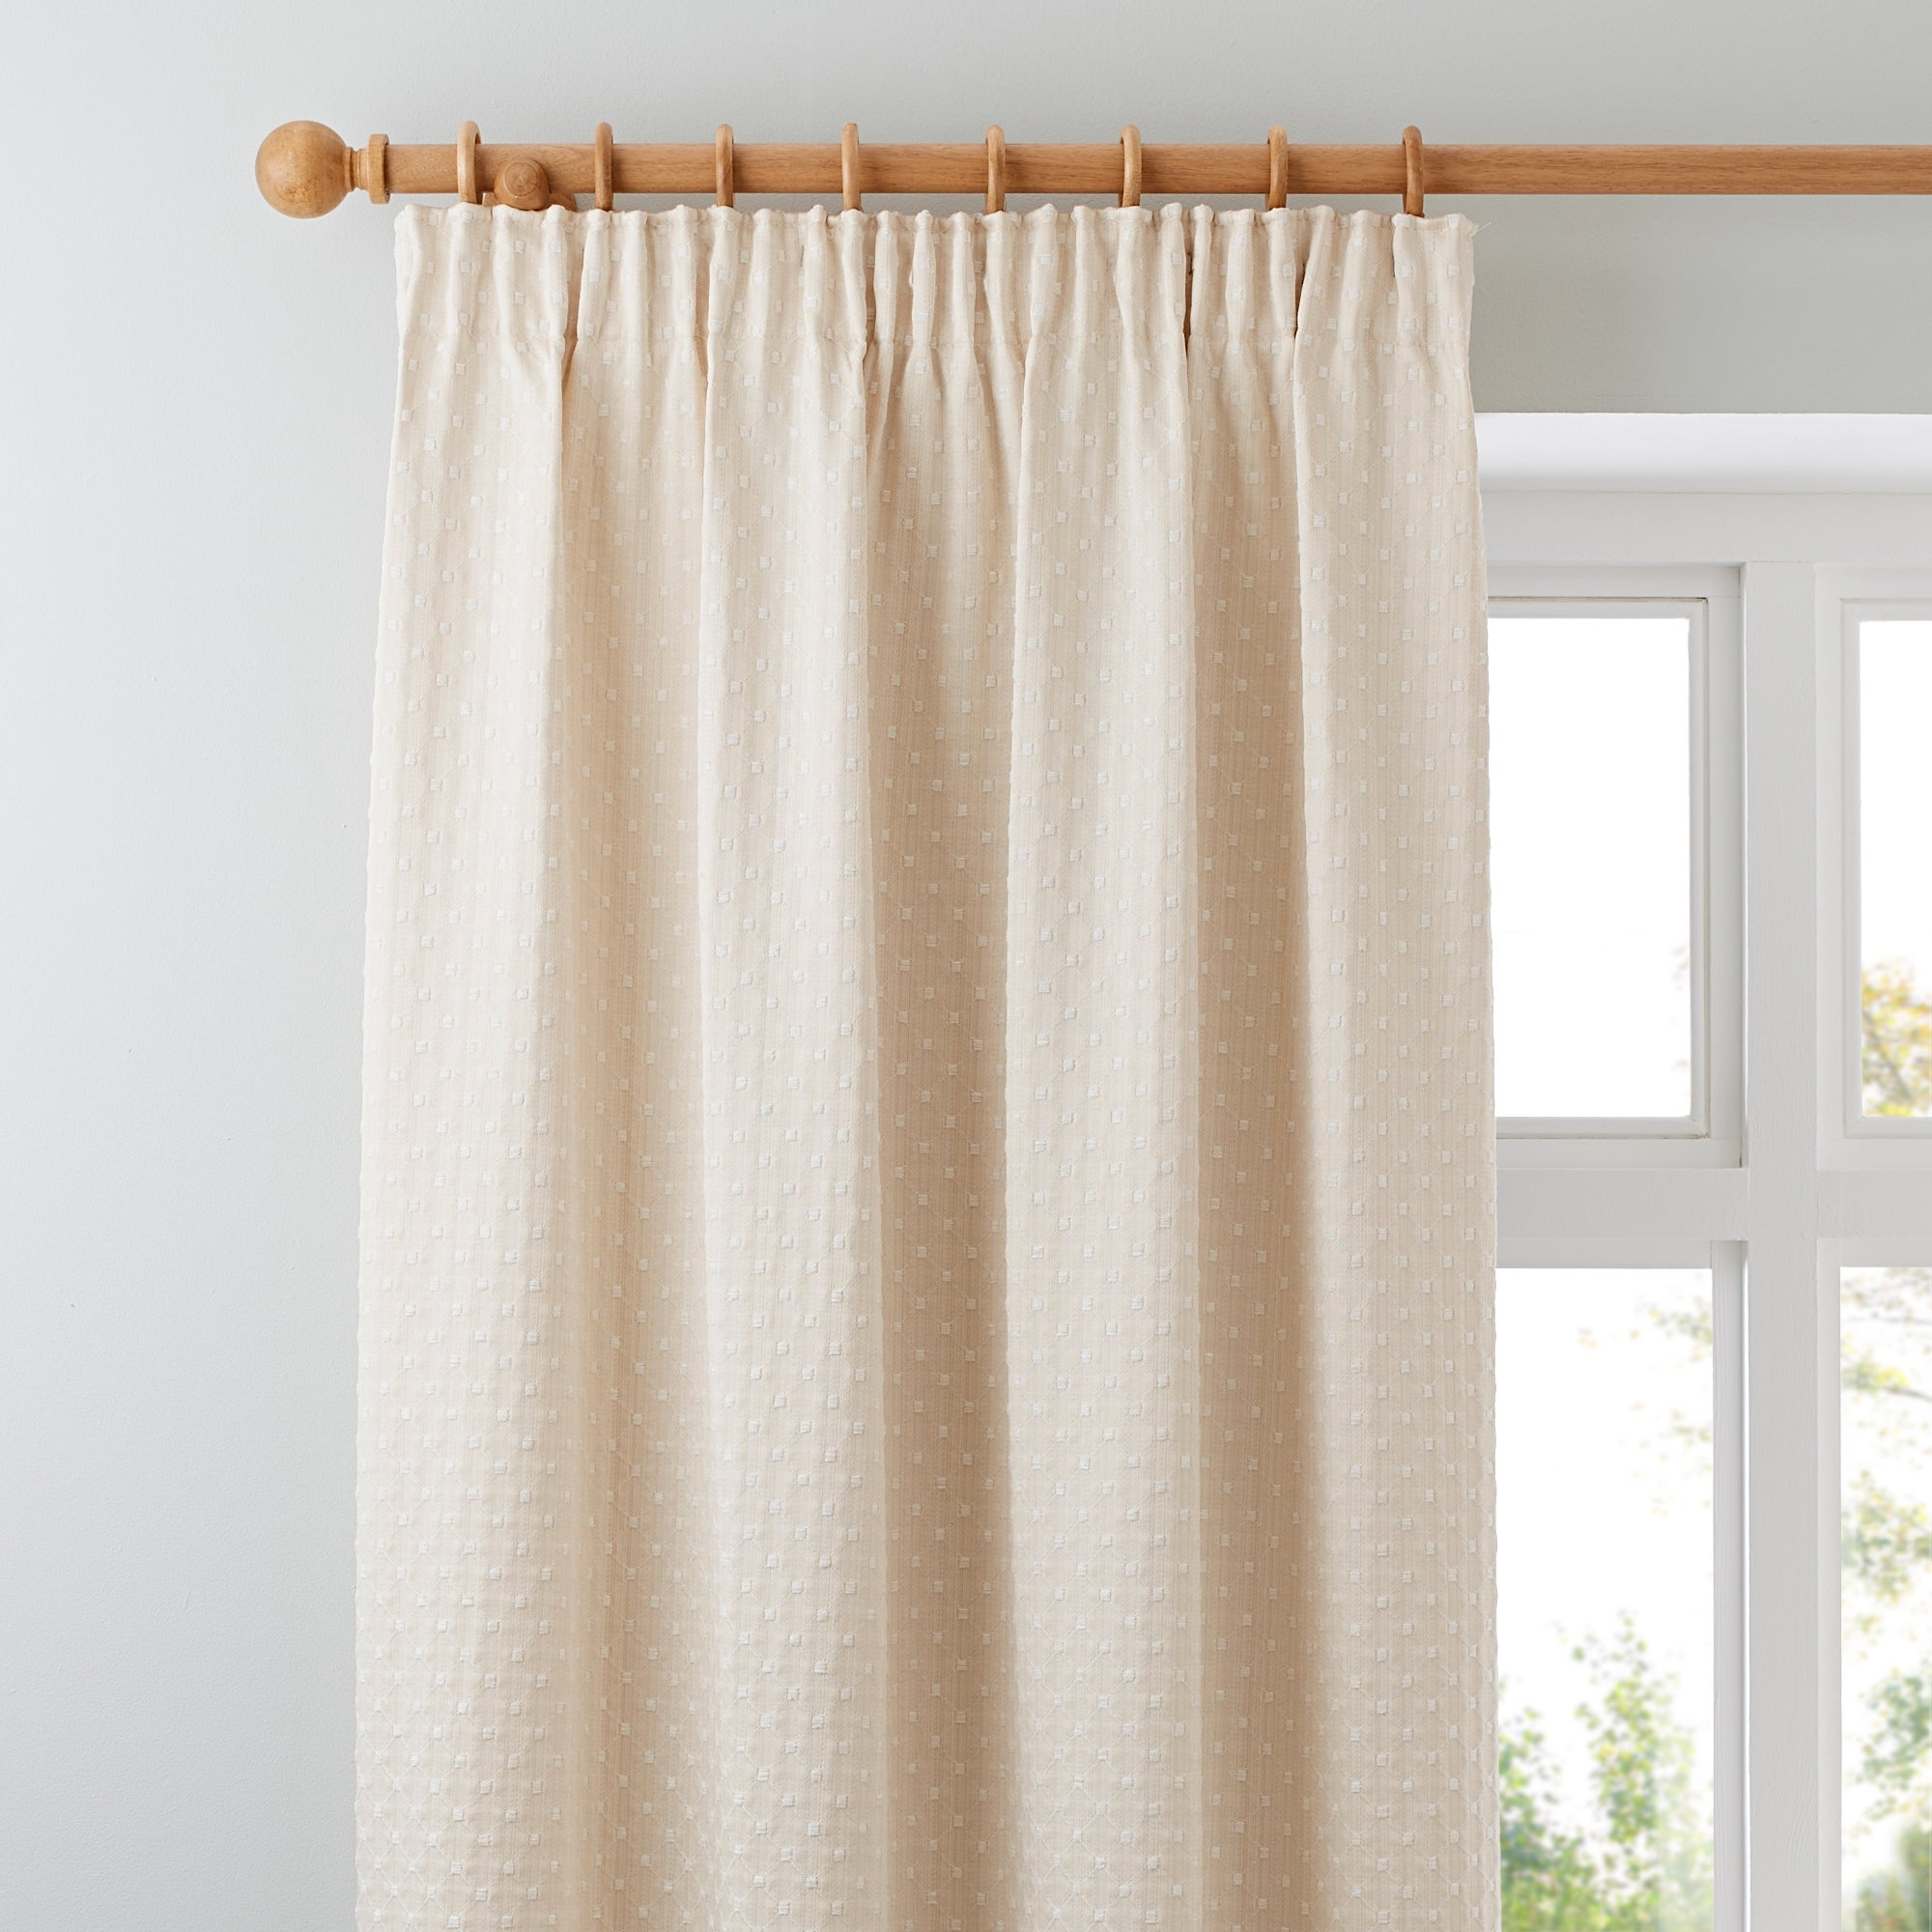 Natural Omega Curtain Collection